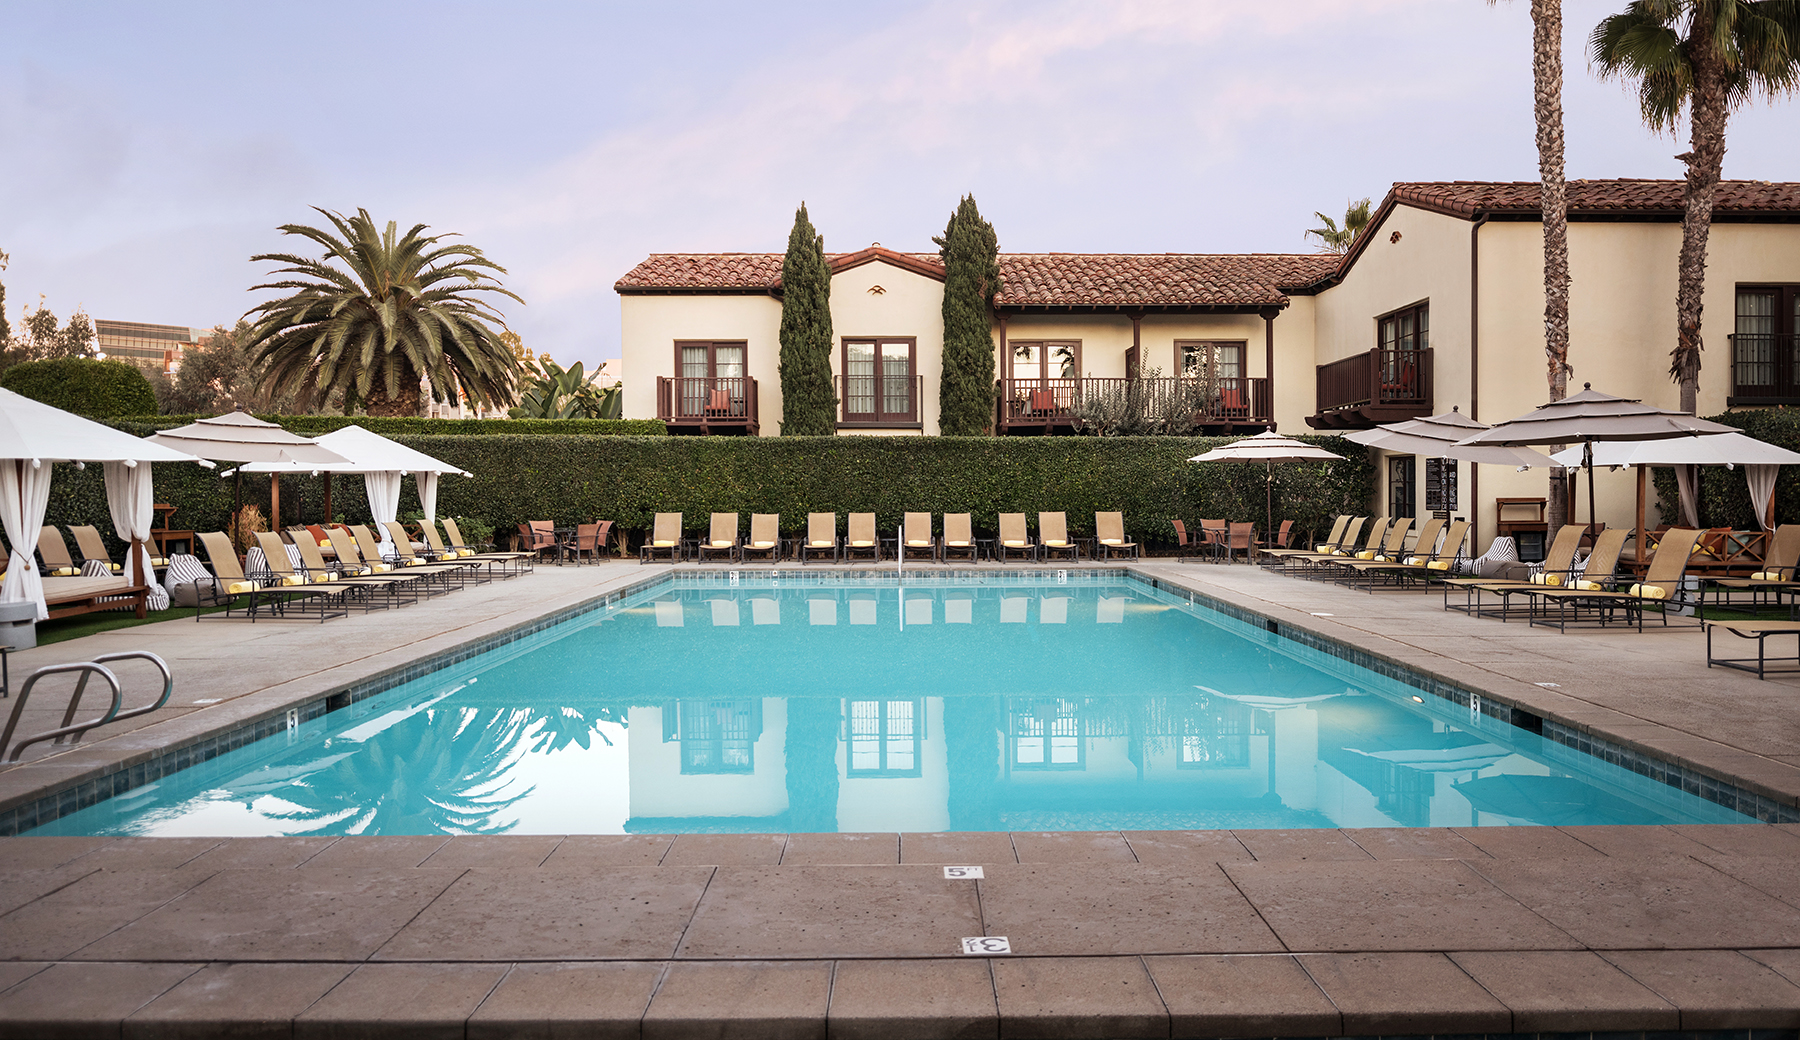 8 San Diego End-of-Summer Pool Daycations  - 8.16.19